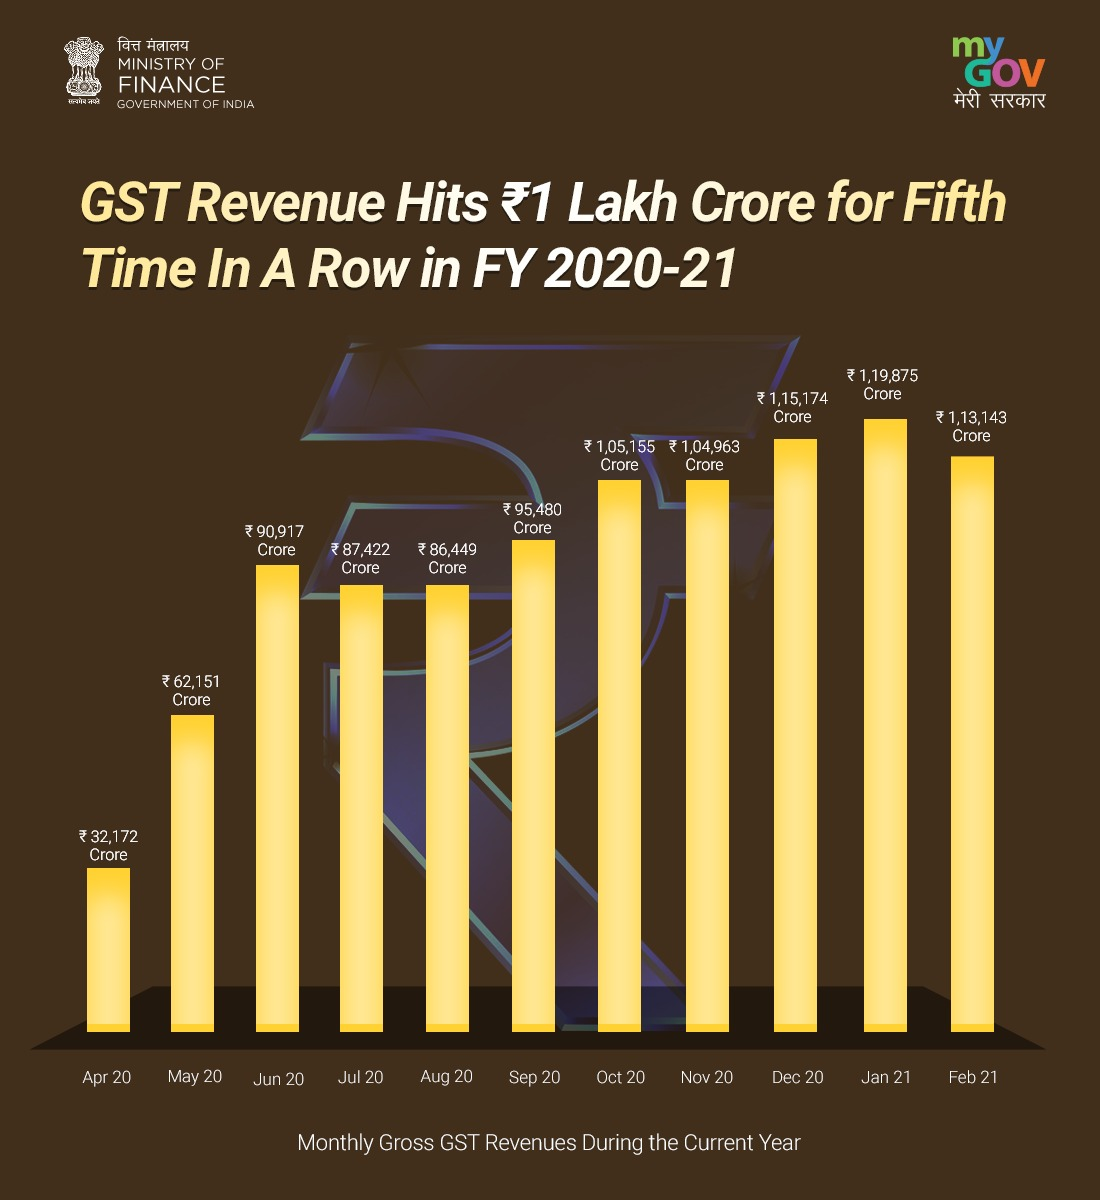 👉The GST revenues crossed ₹1 lakh 5th time in a row & ₹1.1 lakh Cr 3rd time in a row post-pandemic. 👉This is a clear indication of the #EconomicRecovery and the impact of various measures taken by tax administration to improve compliance. #TransformingIndia